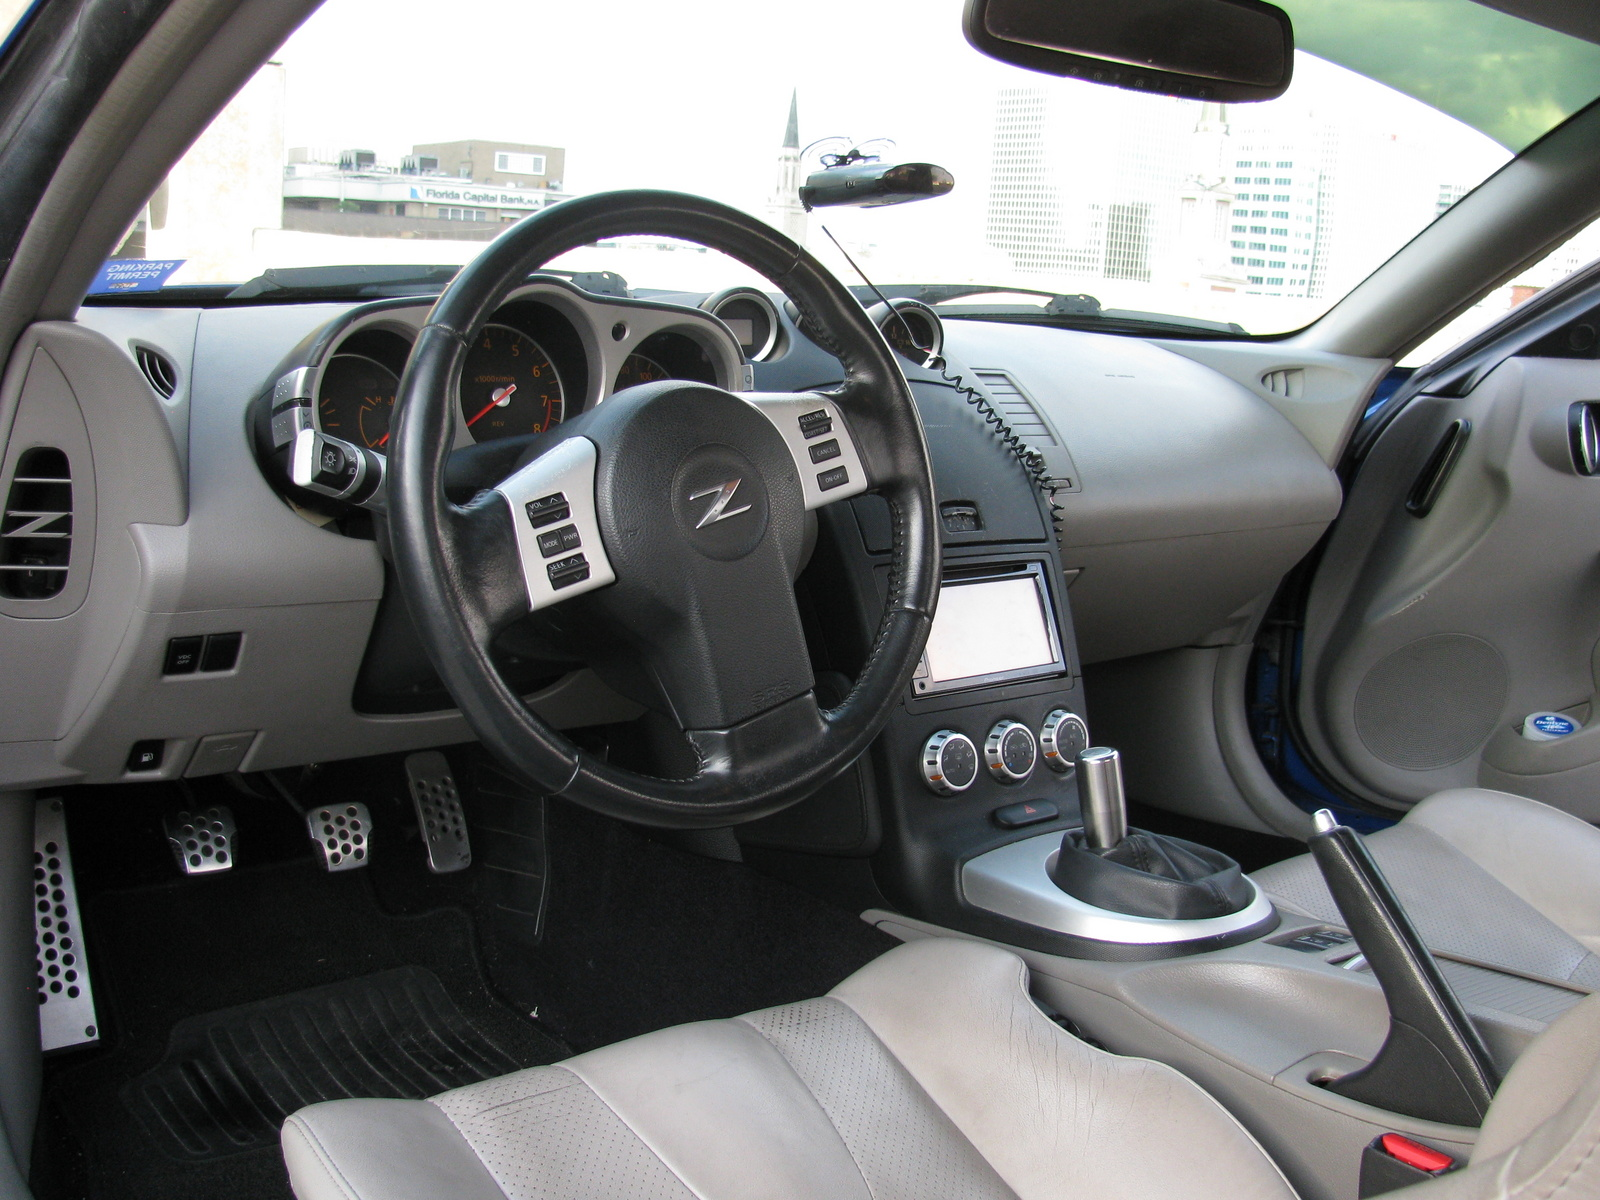 2006 nissan 350z interior pictures cargurus for Interieur 350z